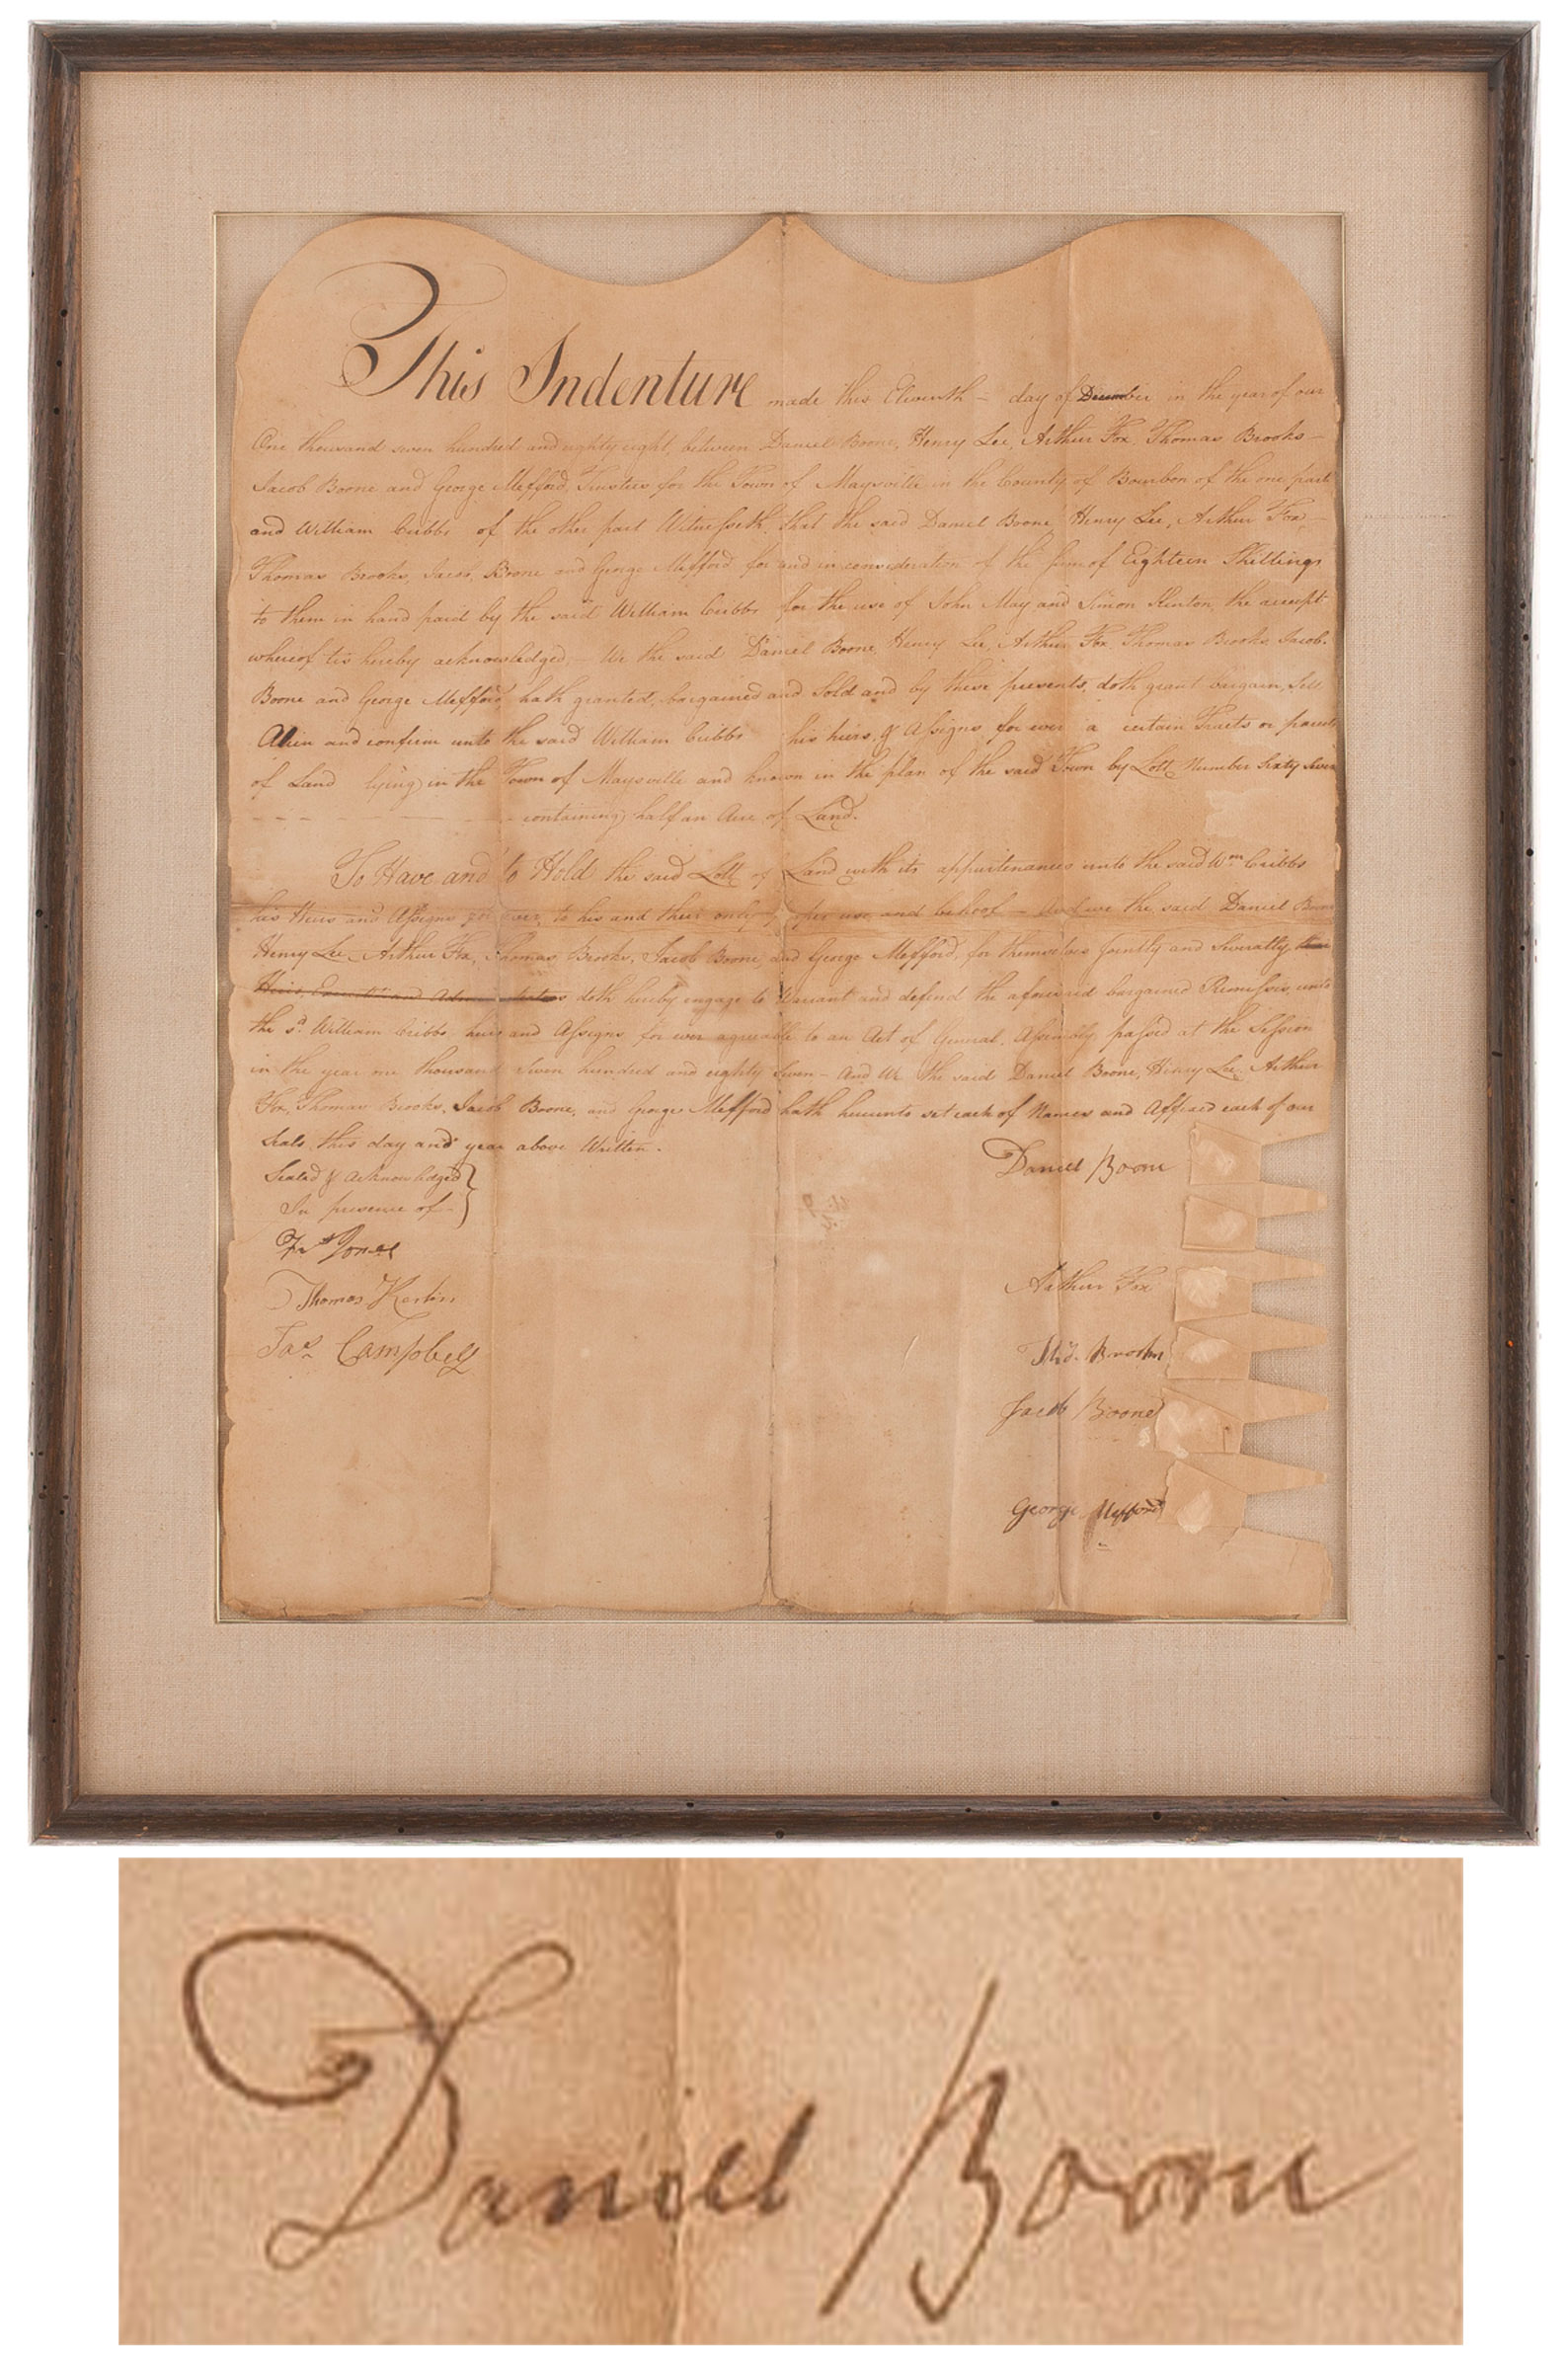 Daniel Boone Autograph Very Scarce 1788 Daniel Boone Autograph Document Signed -- Boone Signs a Kentucky Land Indenture During His Time as a Surveyor and Land Prospector